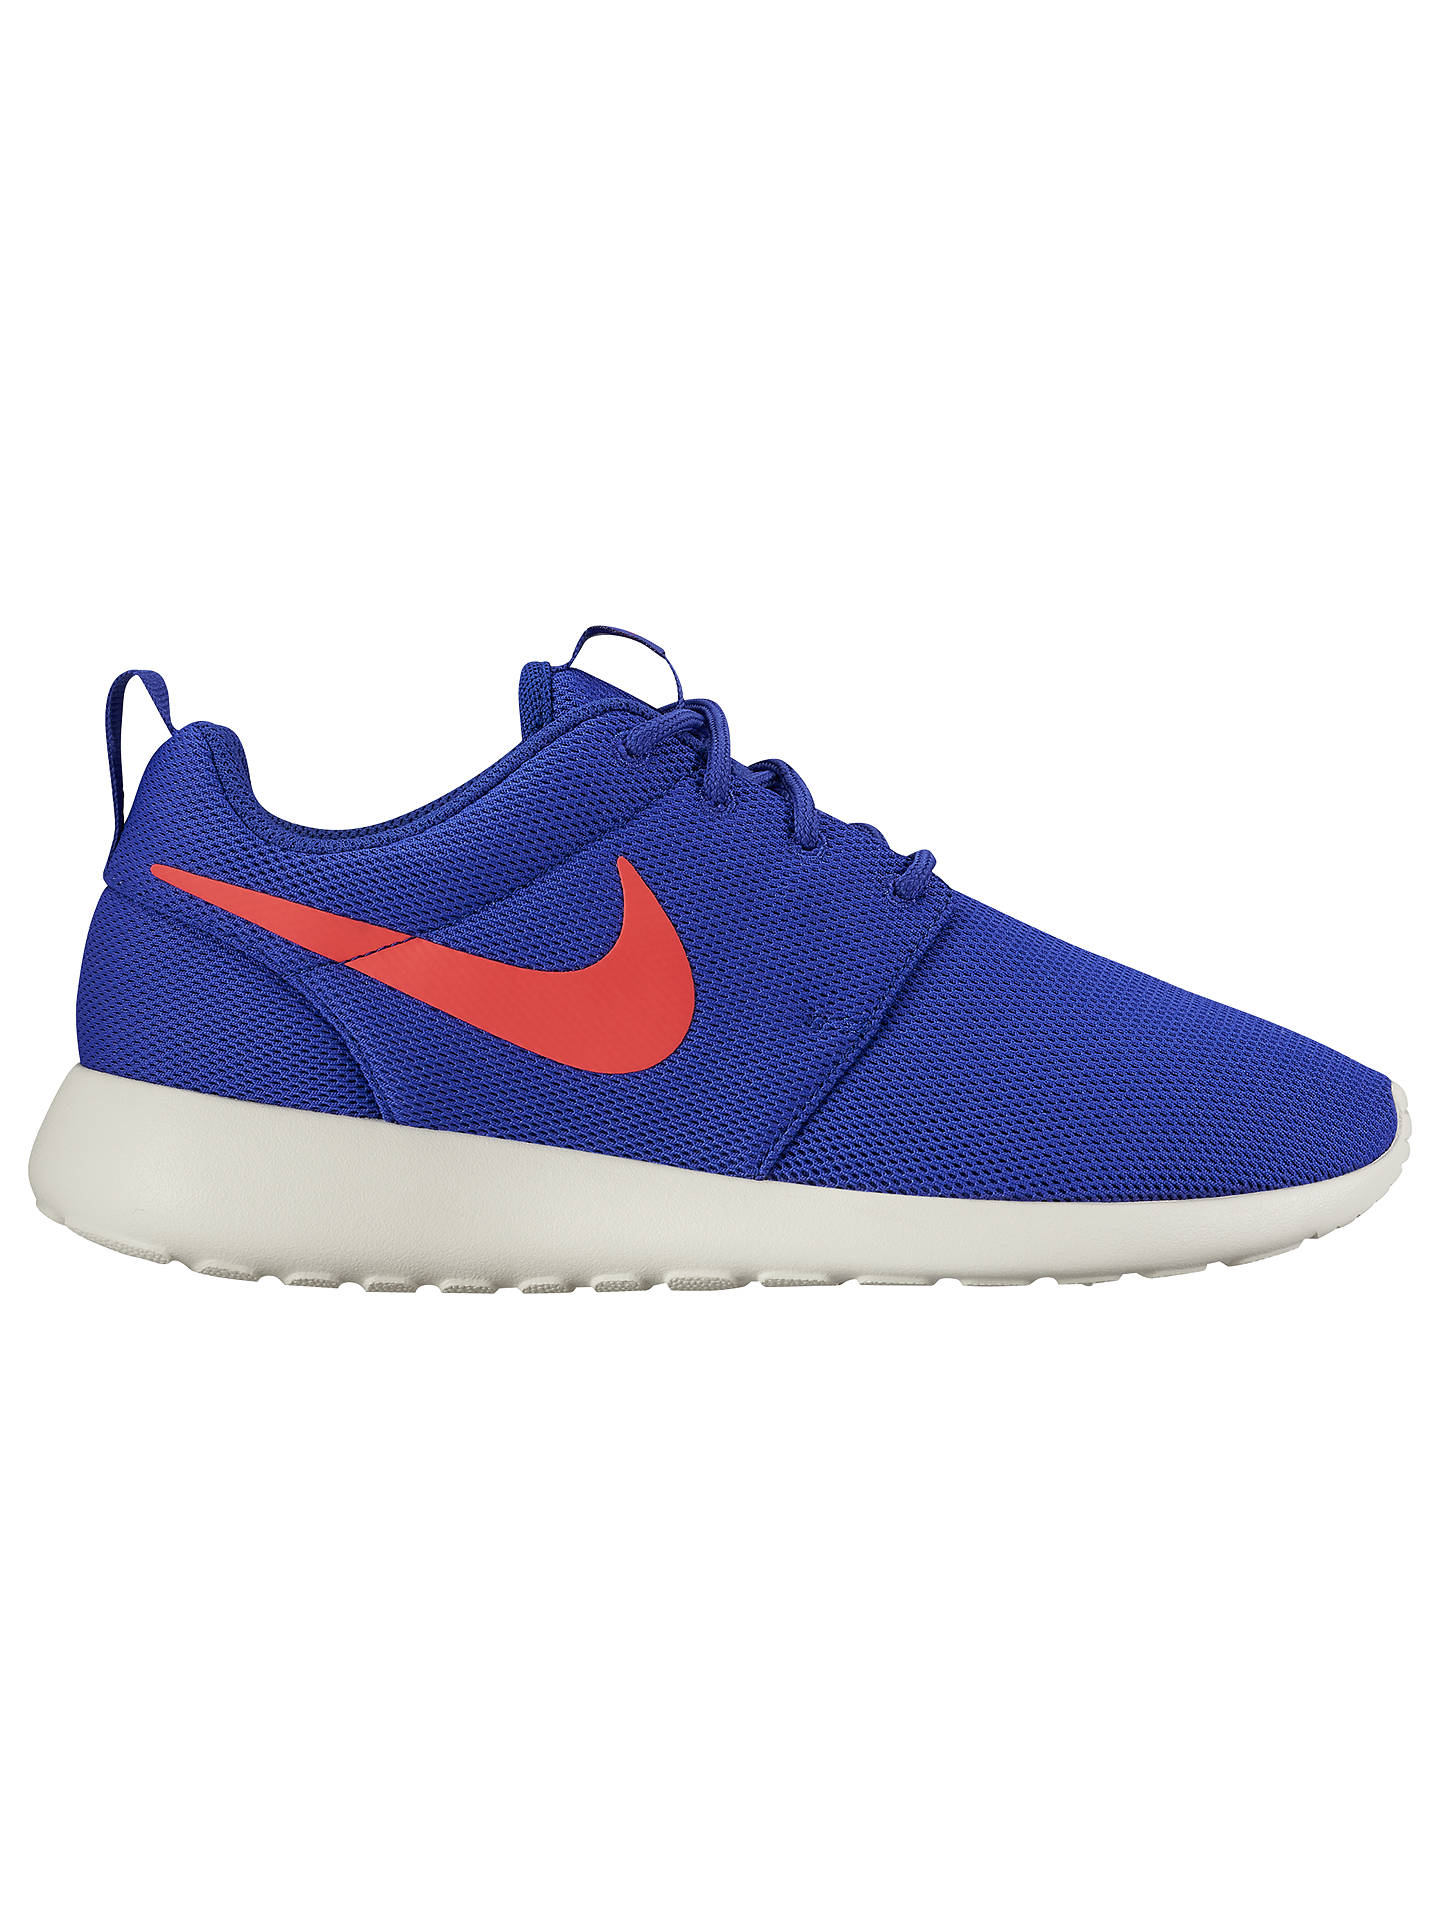 purchase cheap 01208 2bc3c Buy Nike Roshe One Women s Trainers, Concord Ember Glow, 4 Online at  johnlewis